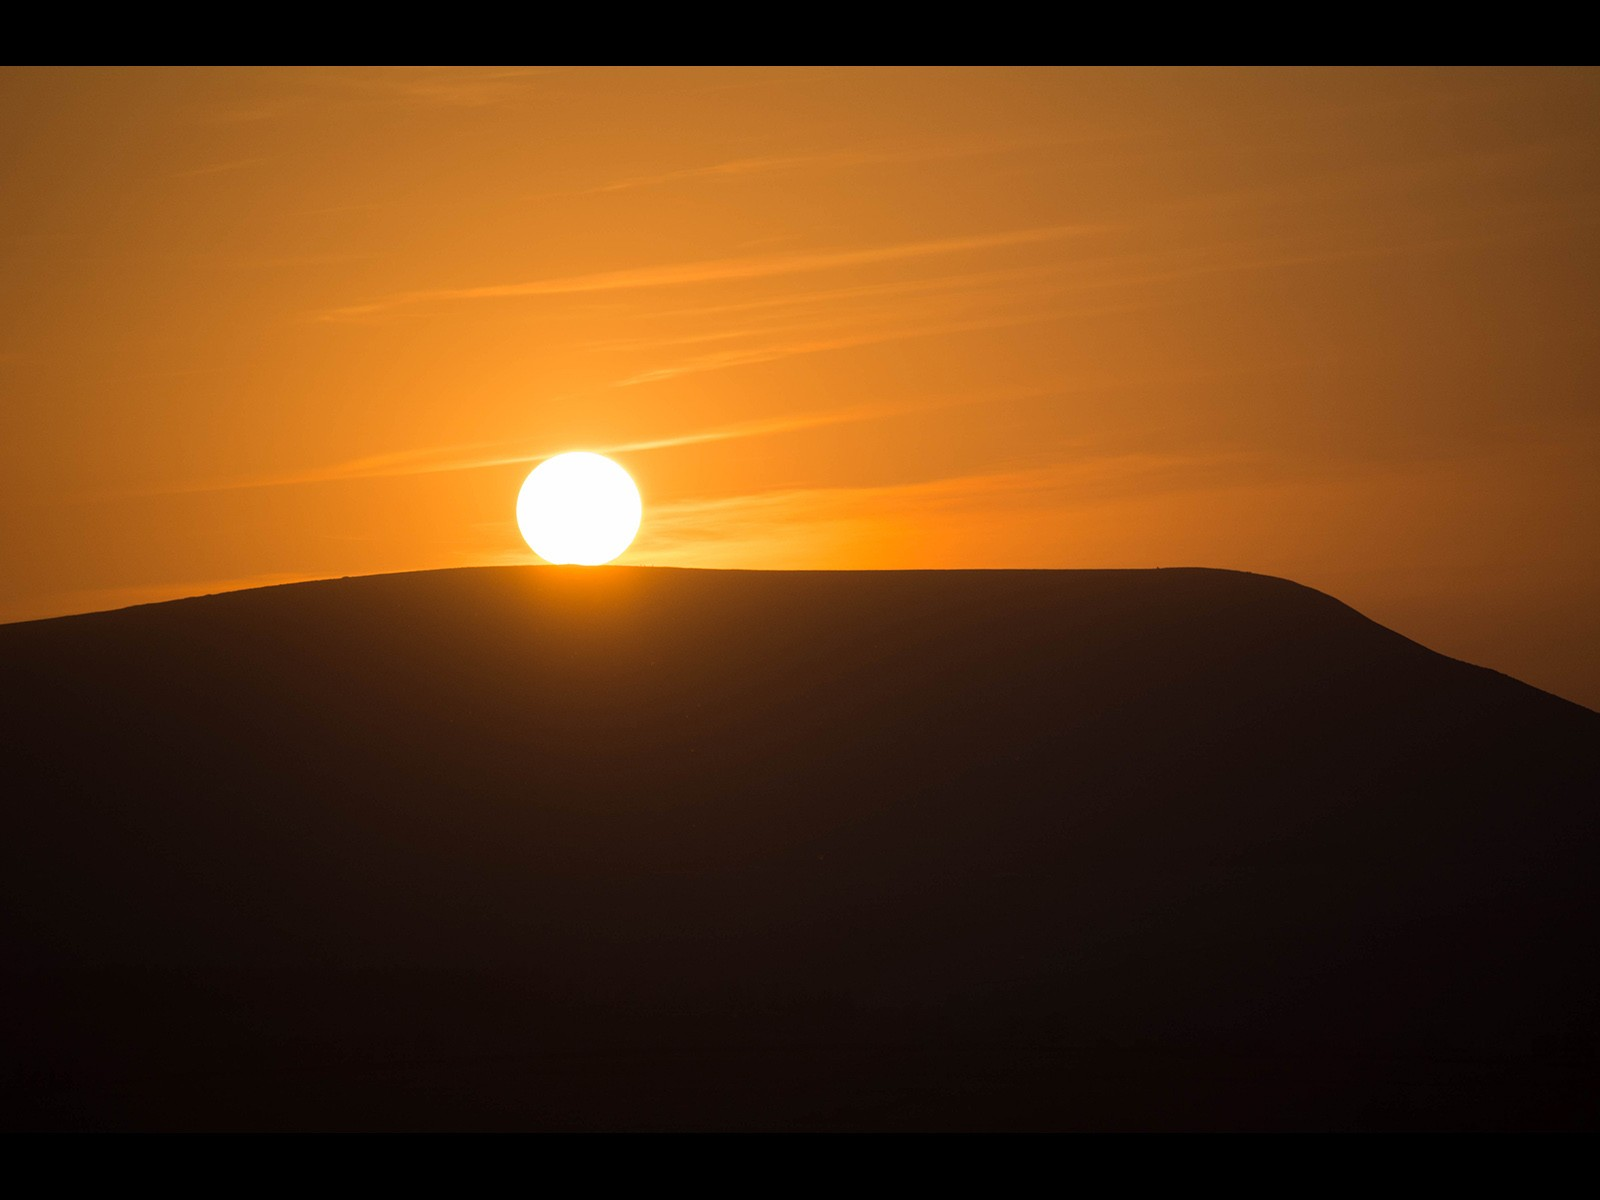 Imagine our Sun rolling down Pendle    Hill